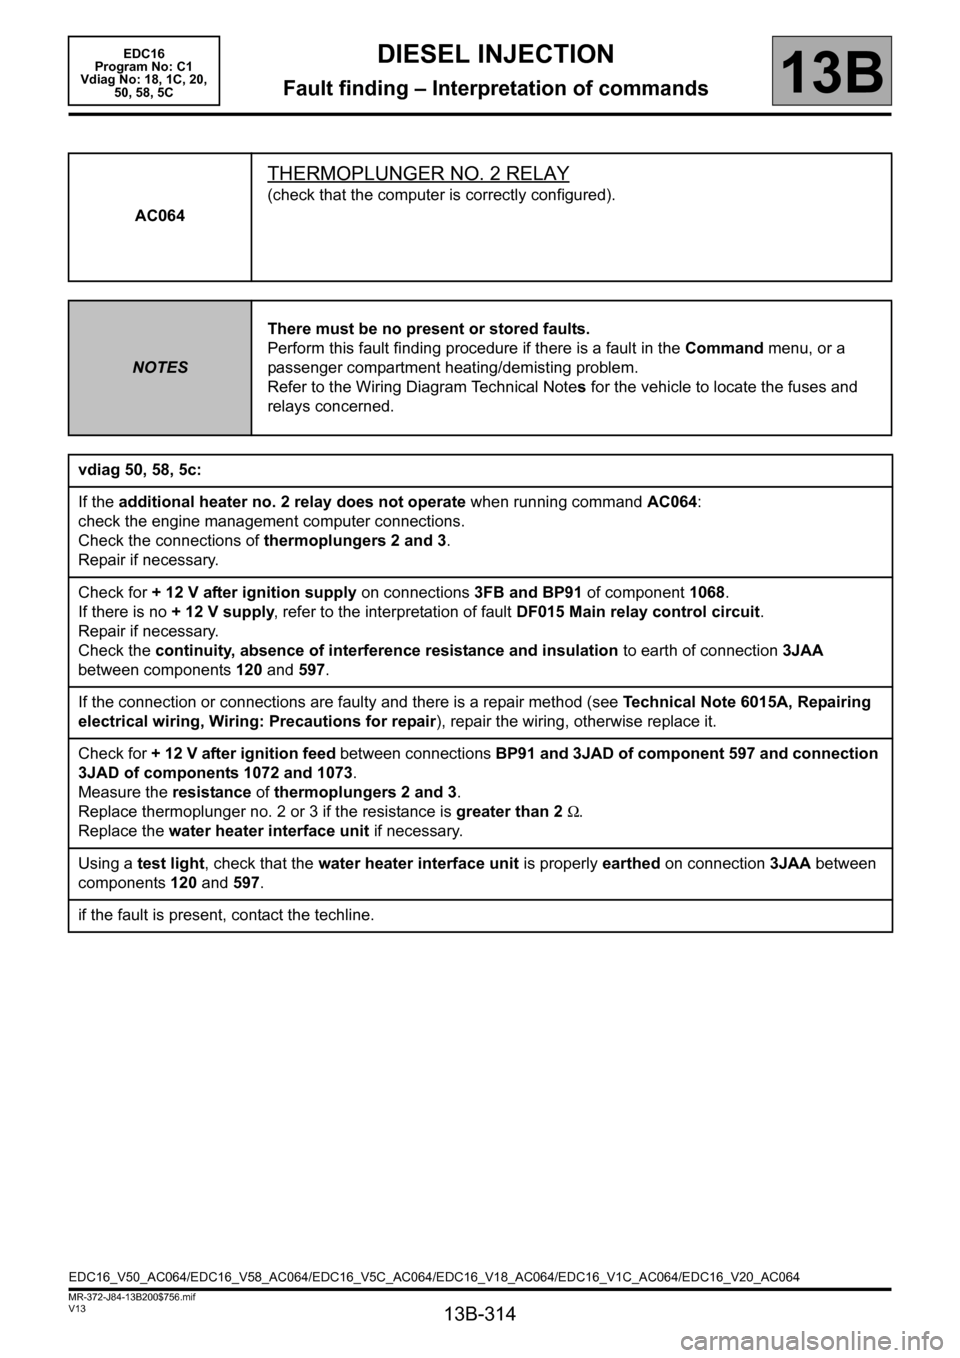 hight resolution of renault scenic 2011 j95 3 g engine and peripherals edc16 workshop manual page